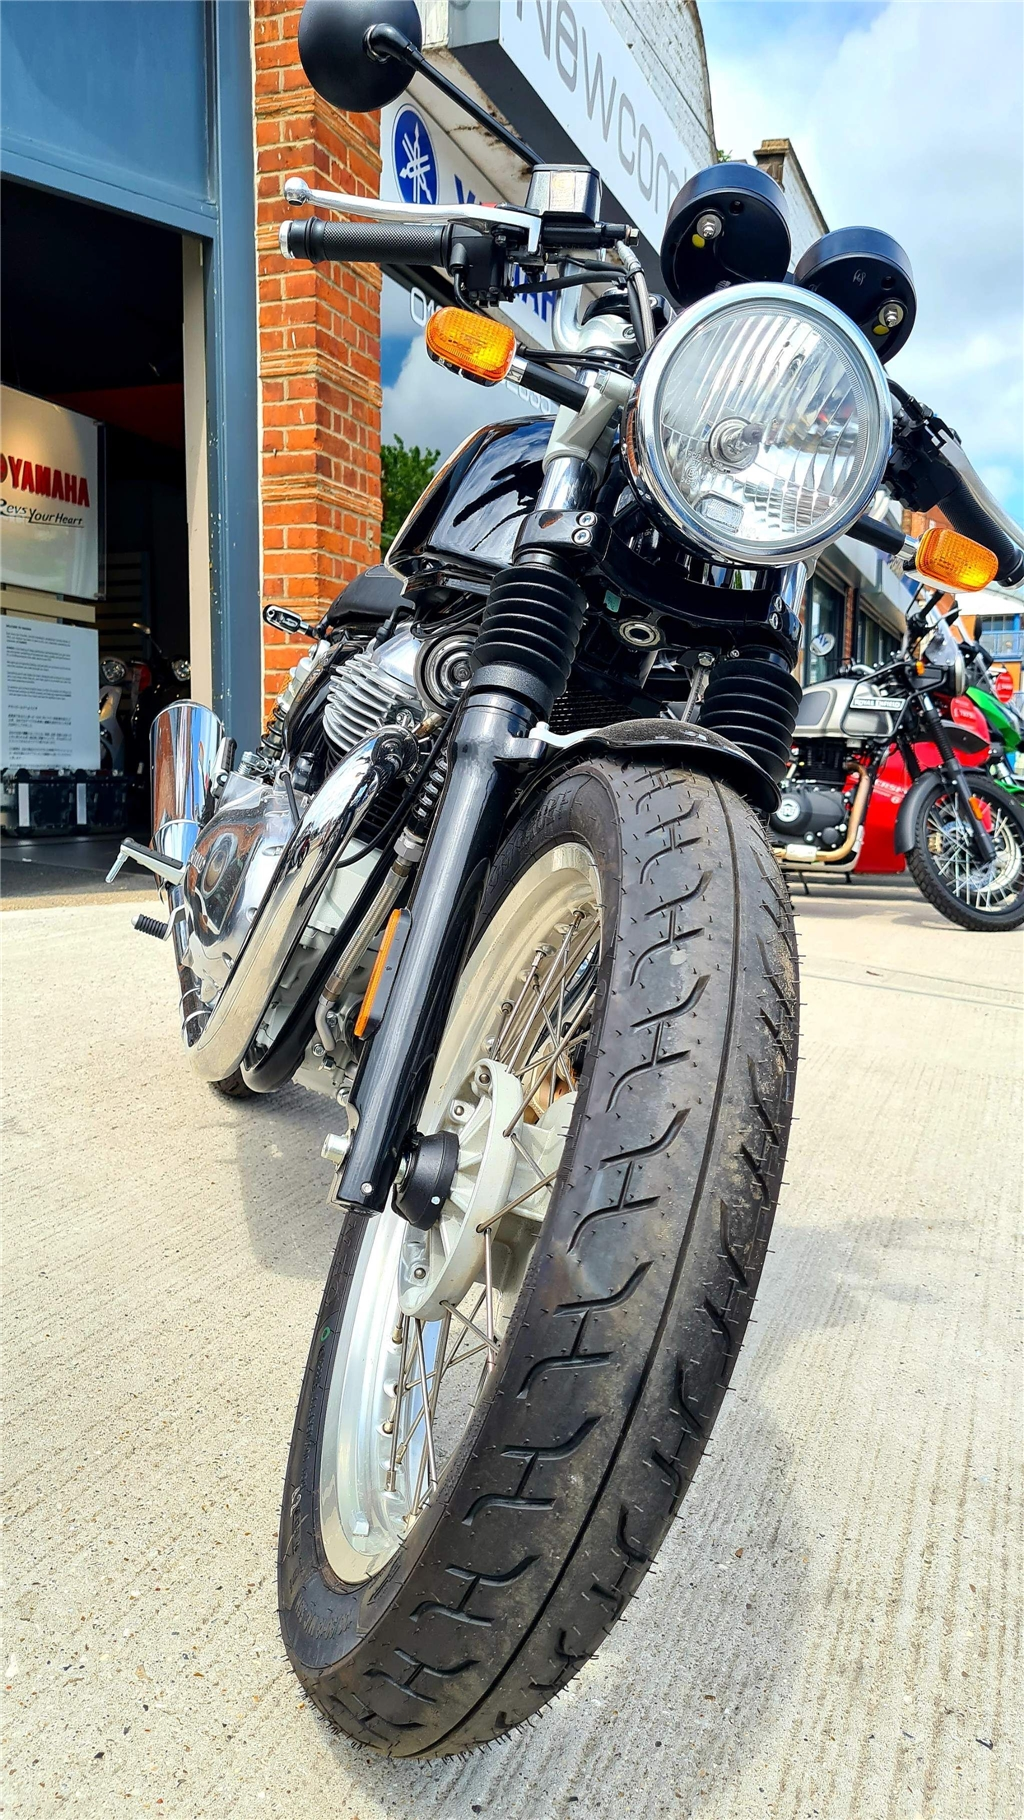 Royal Enfield Continental GT 650 Twin 650 Dual Colour ABS - Image 4